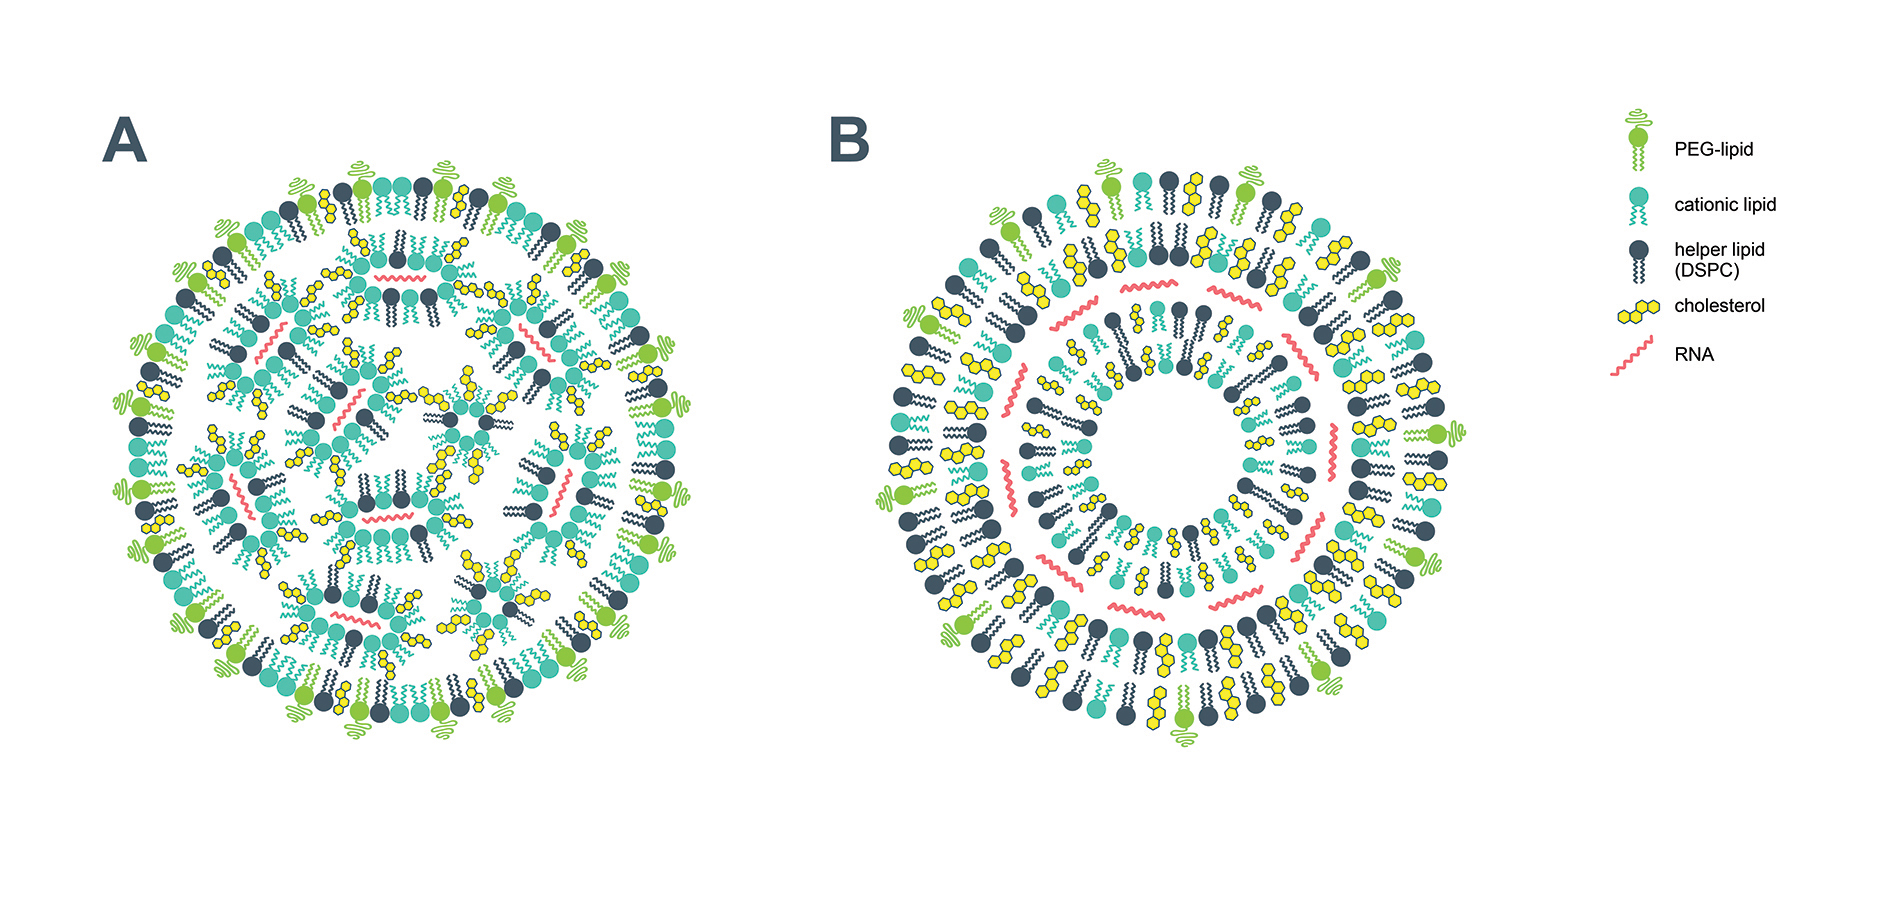 Suggested structures of lipid nanoparticle vaccine carriers